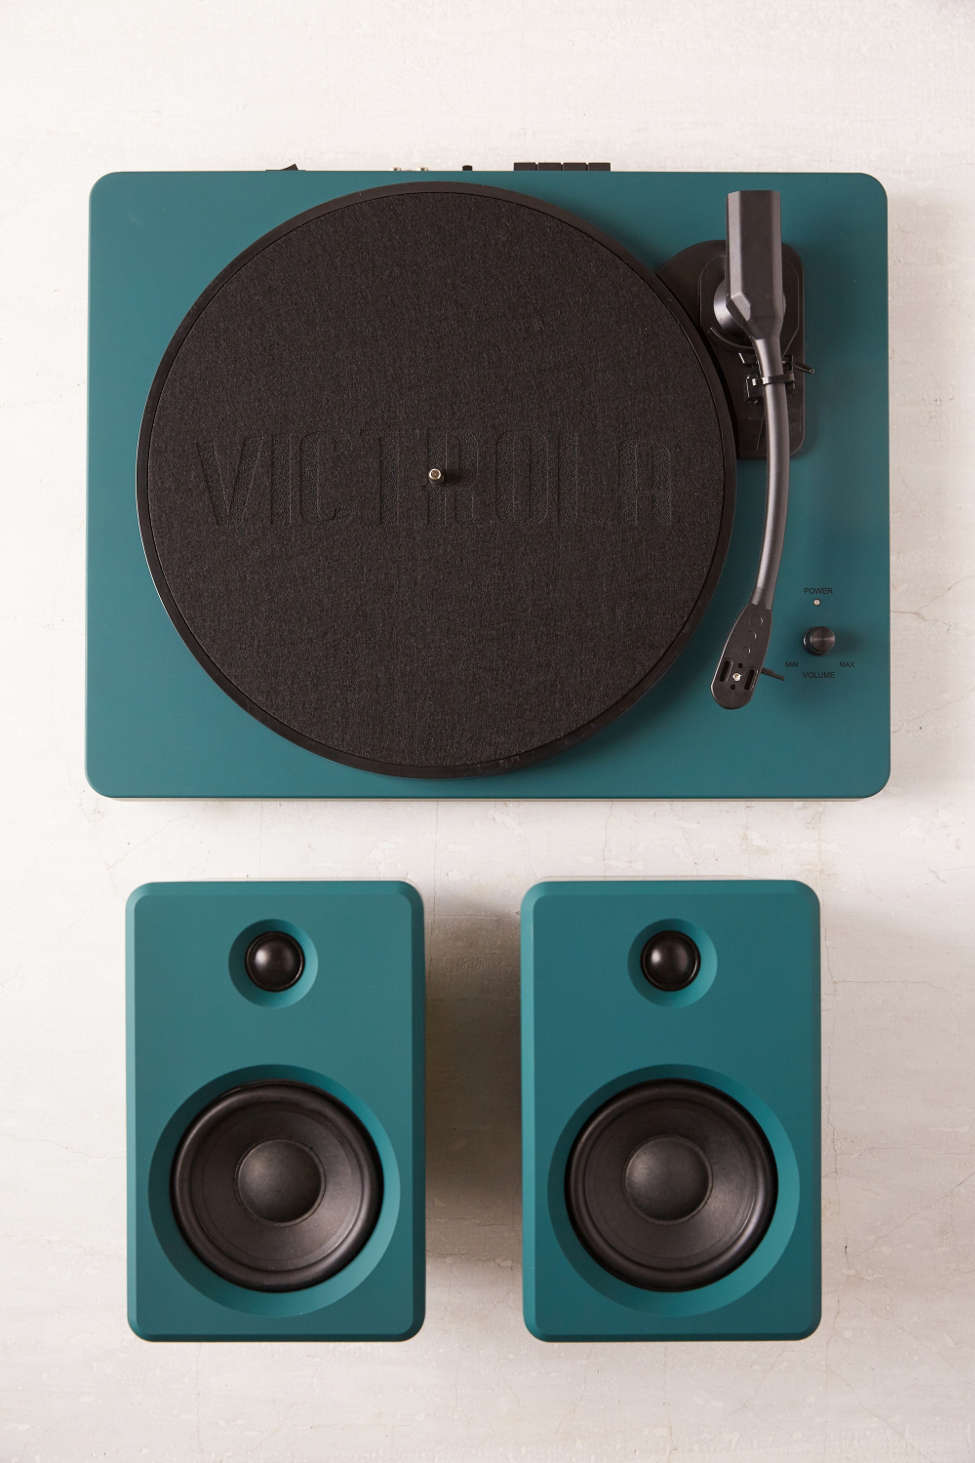 EP-33 Bluetooth Turntable With Speakers - Dark Green